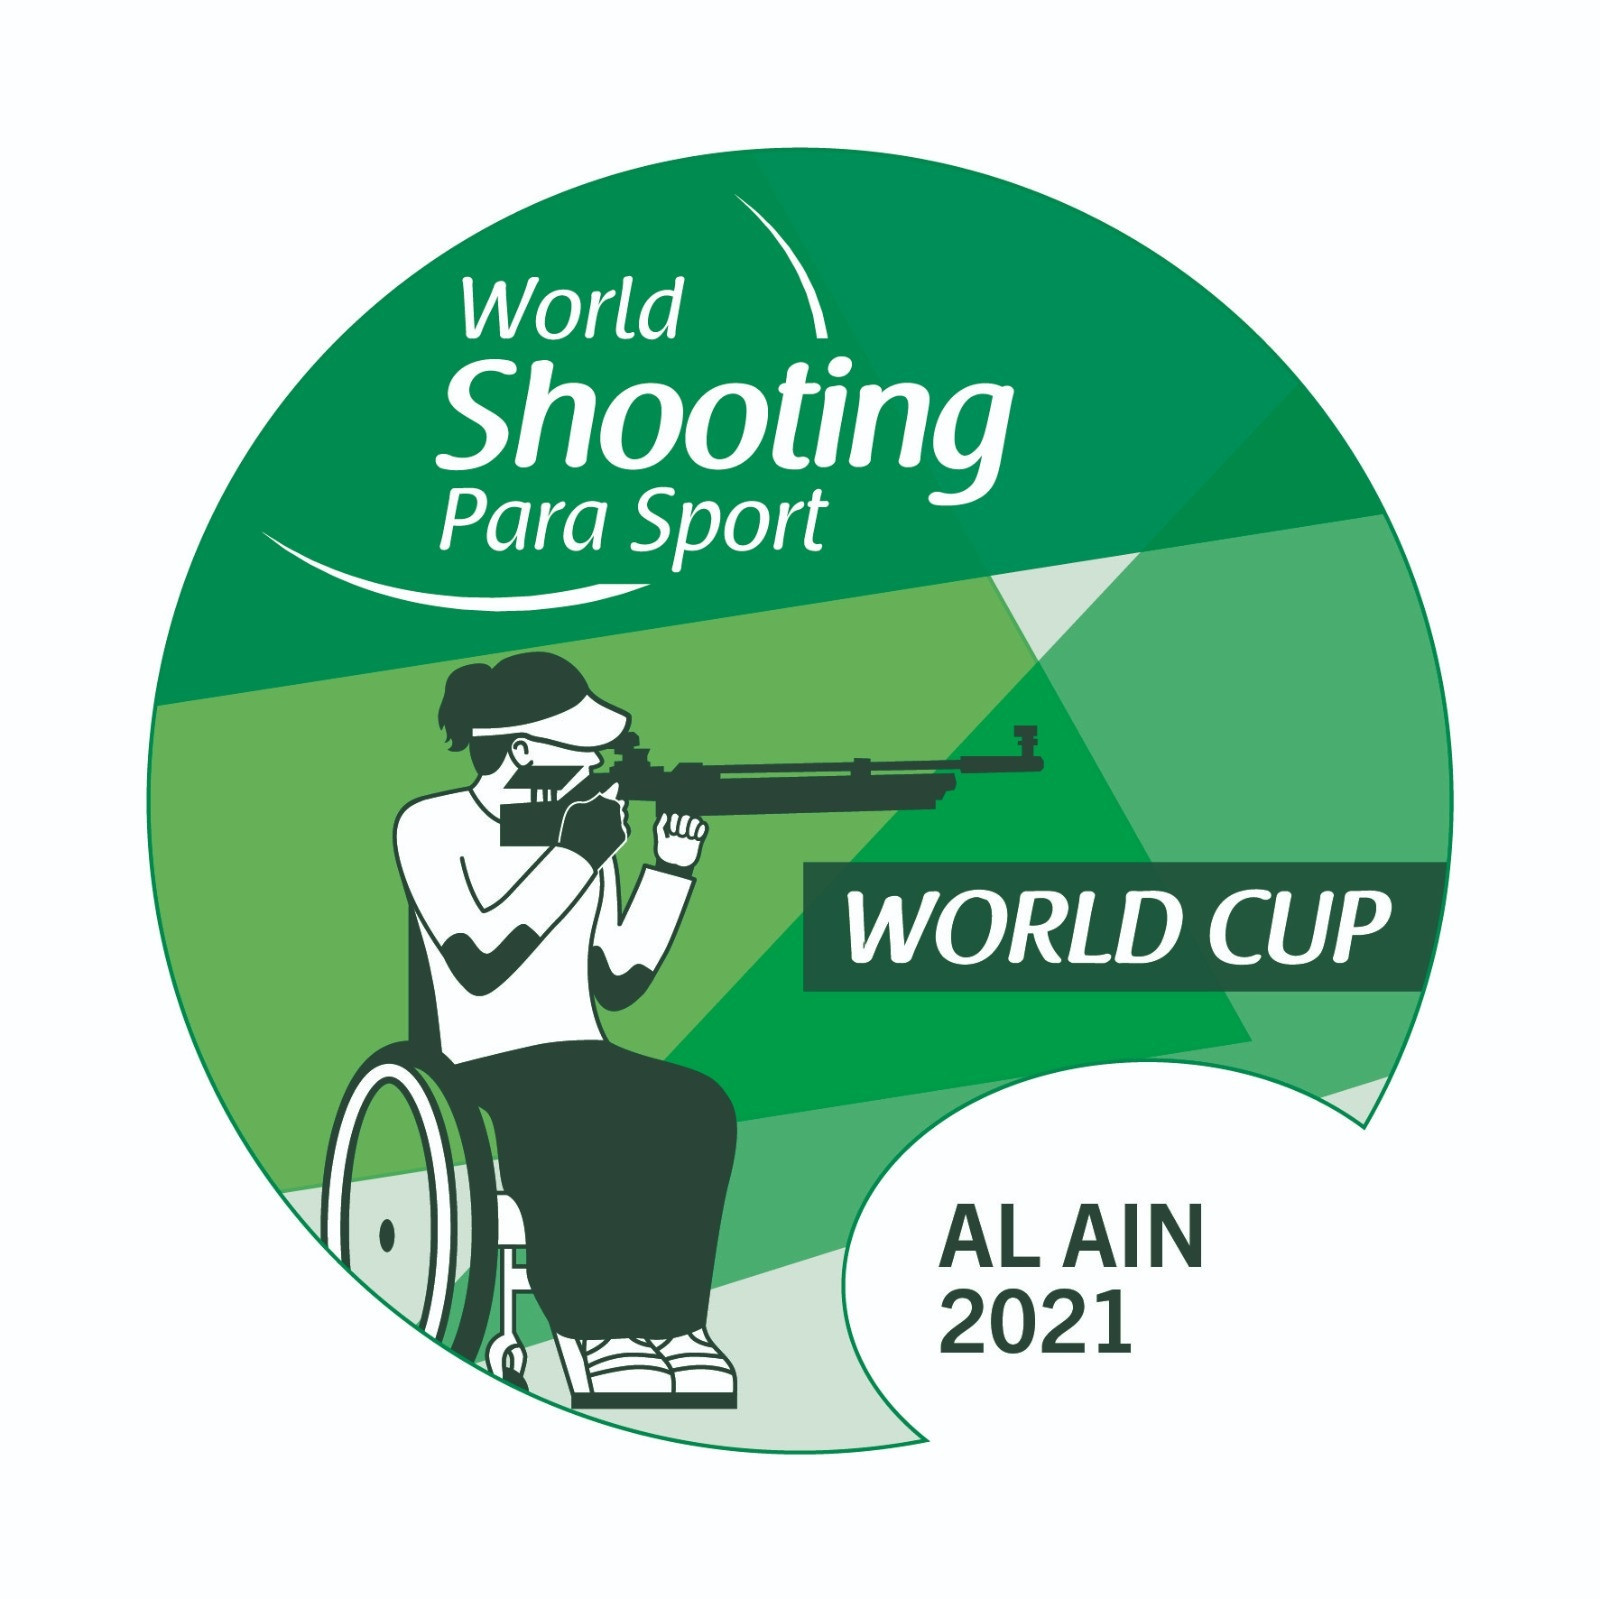 Yurii Stoiev and Oleksii Denysiuk both struck gold on the opening day of the World Shooting Para Sport World Cup in Al Ain ©Getty Images